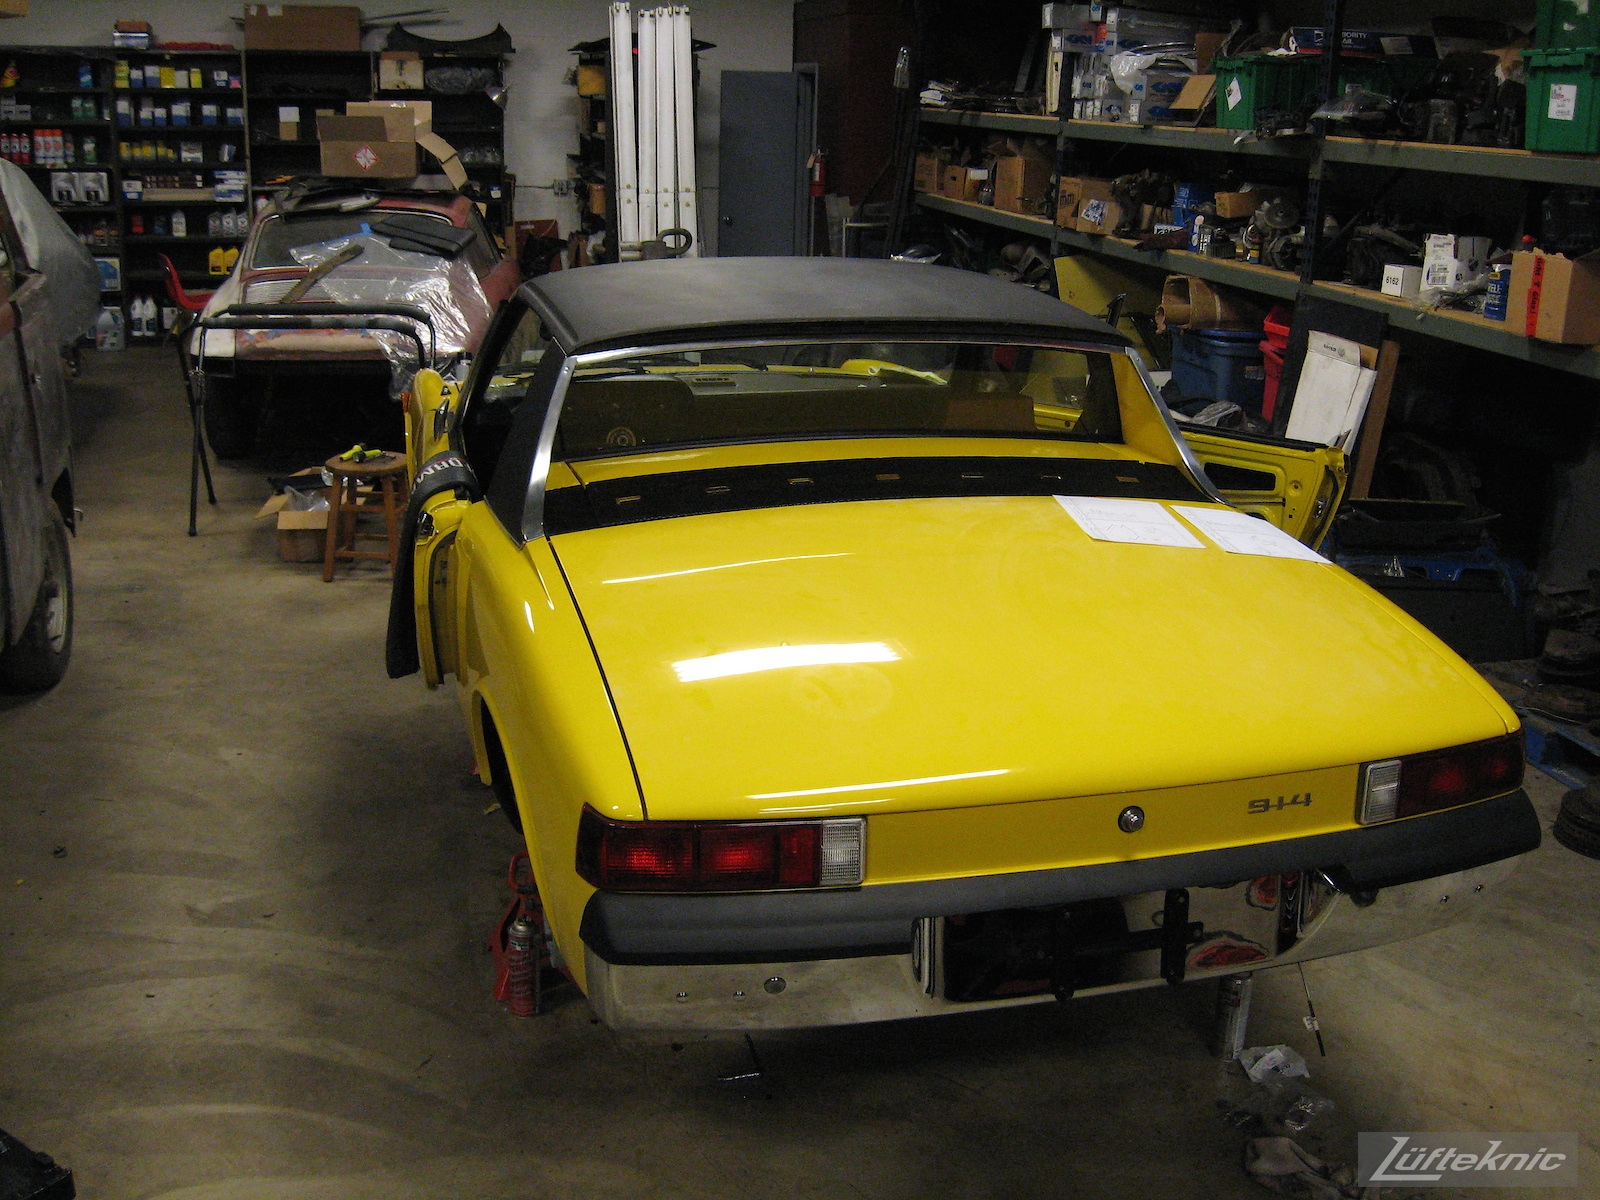 New top and nearly complete restored yellow Porsche 914 at Lufteknic.